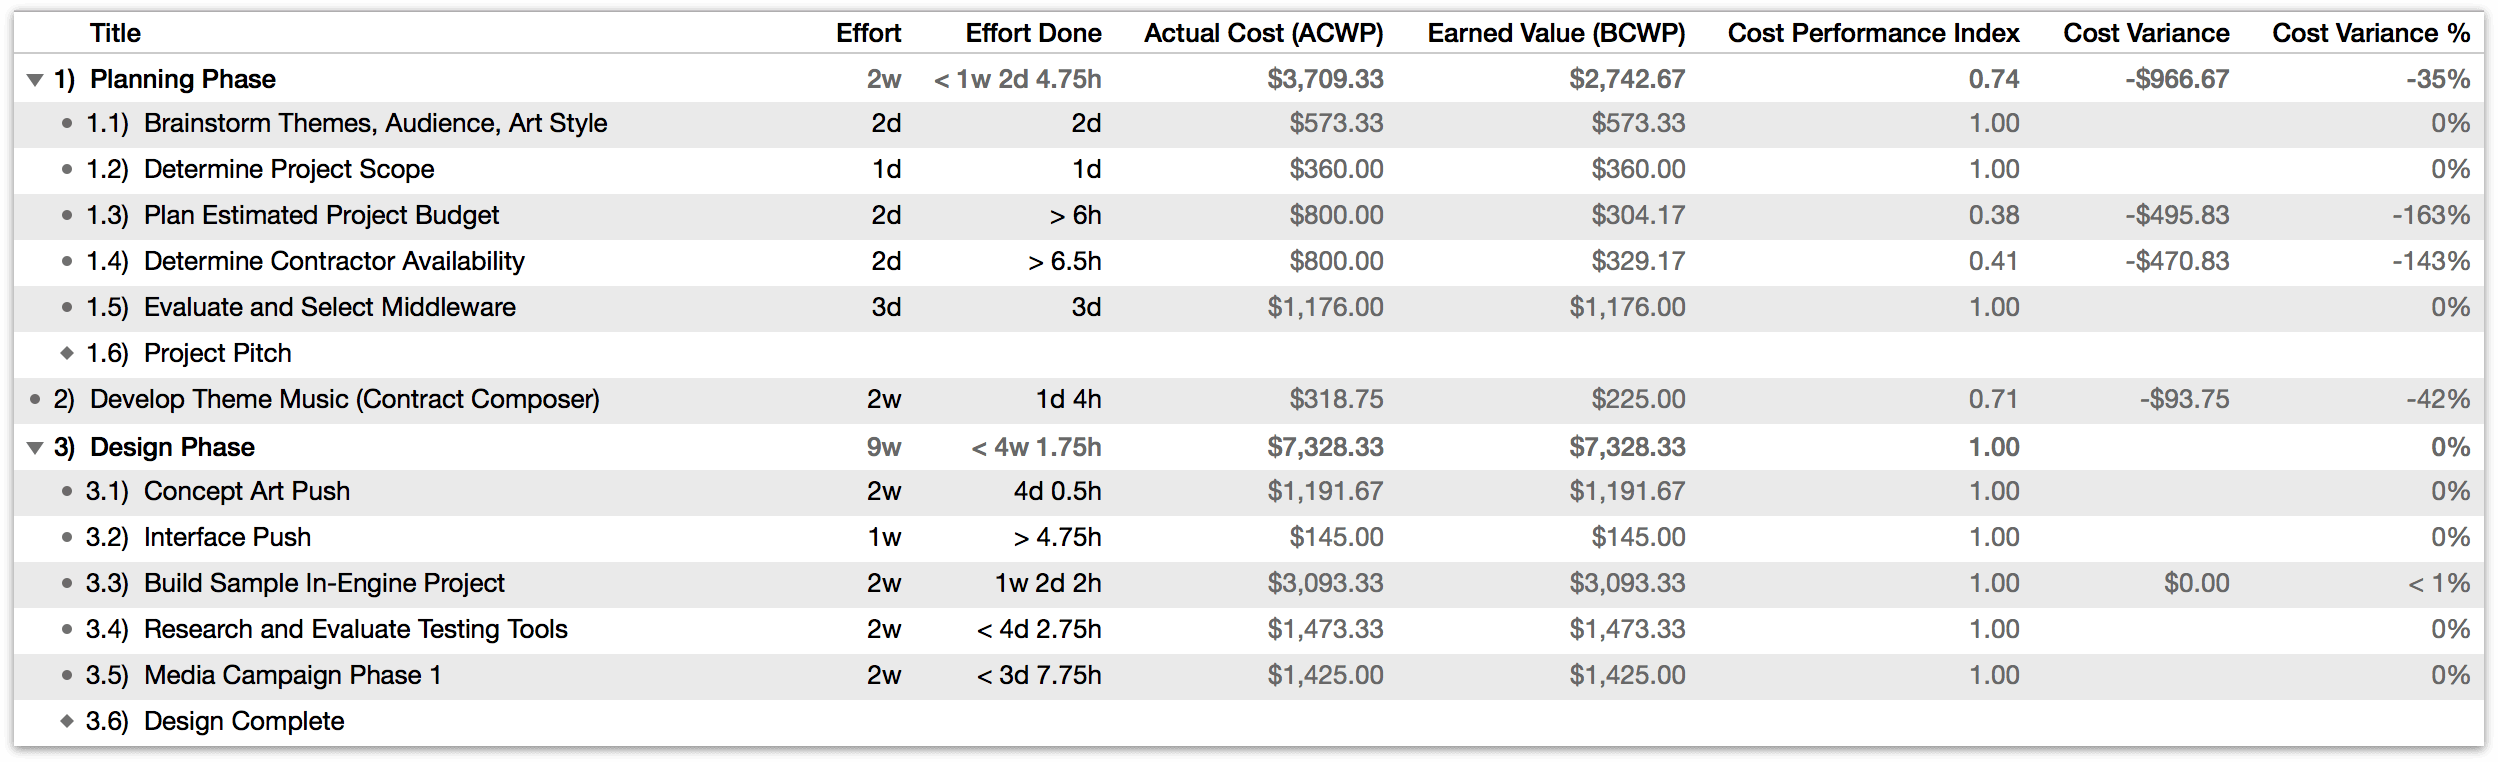 Earned Value Analysis columns related to budget.